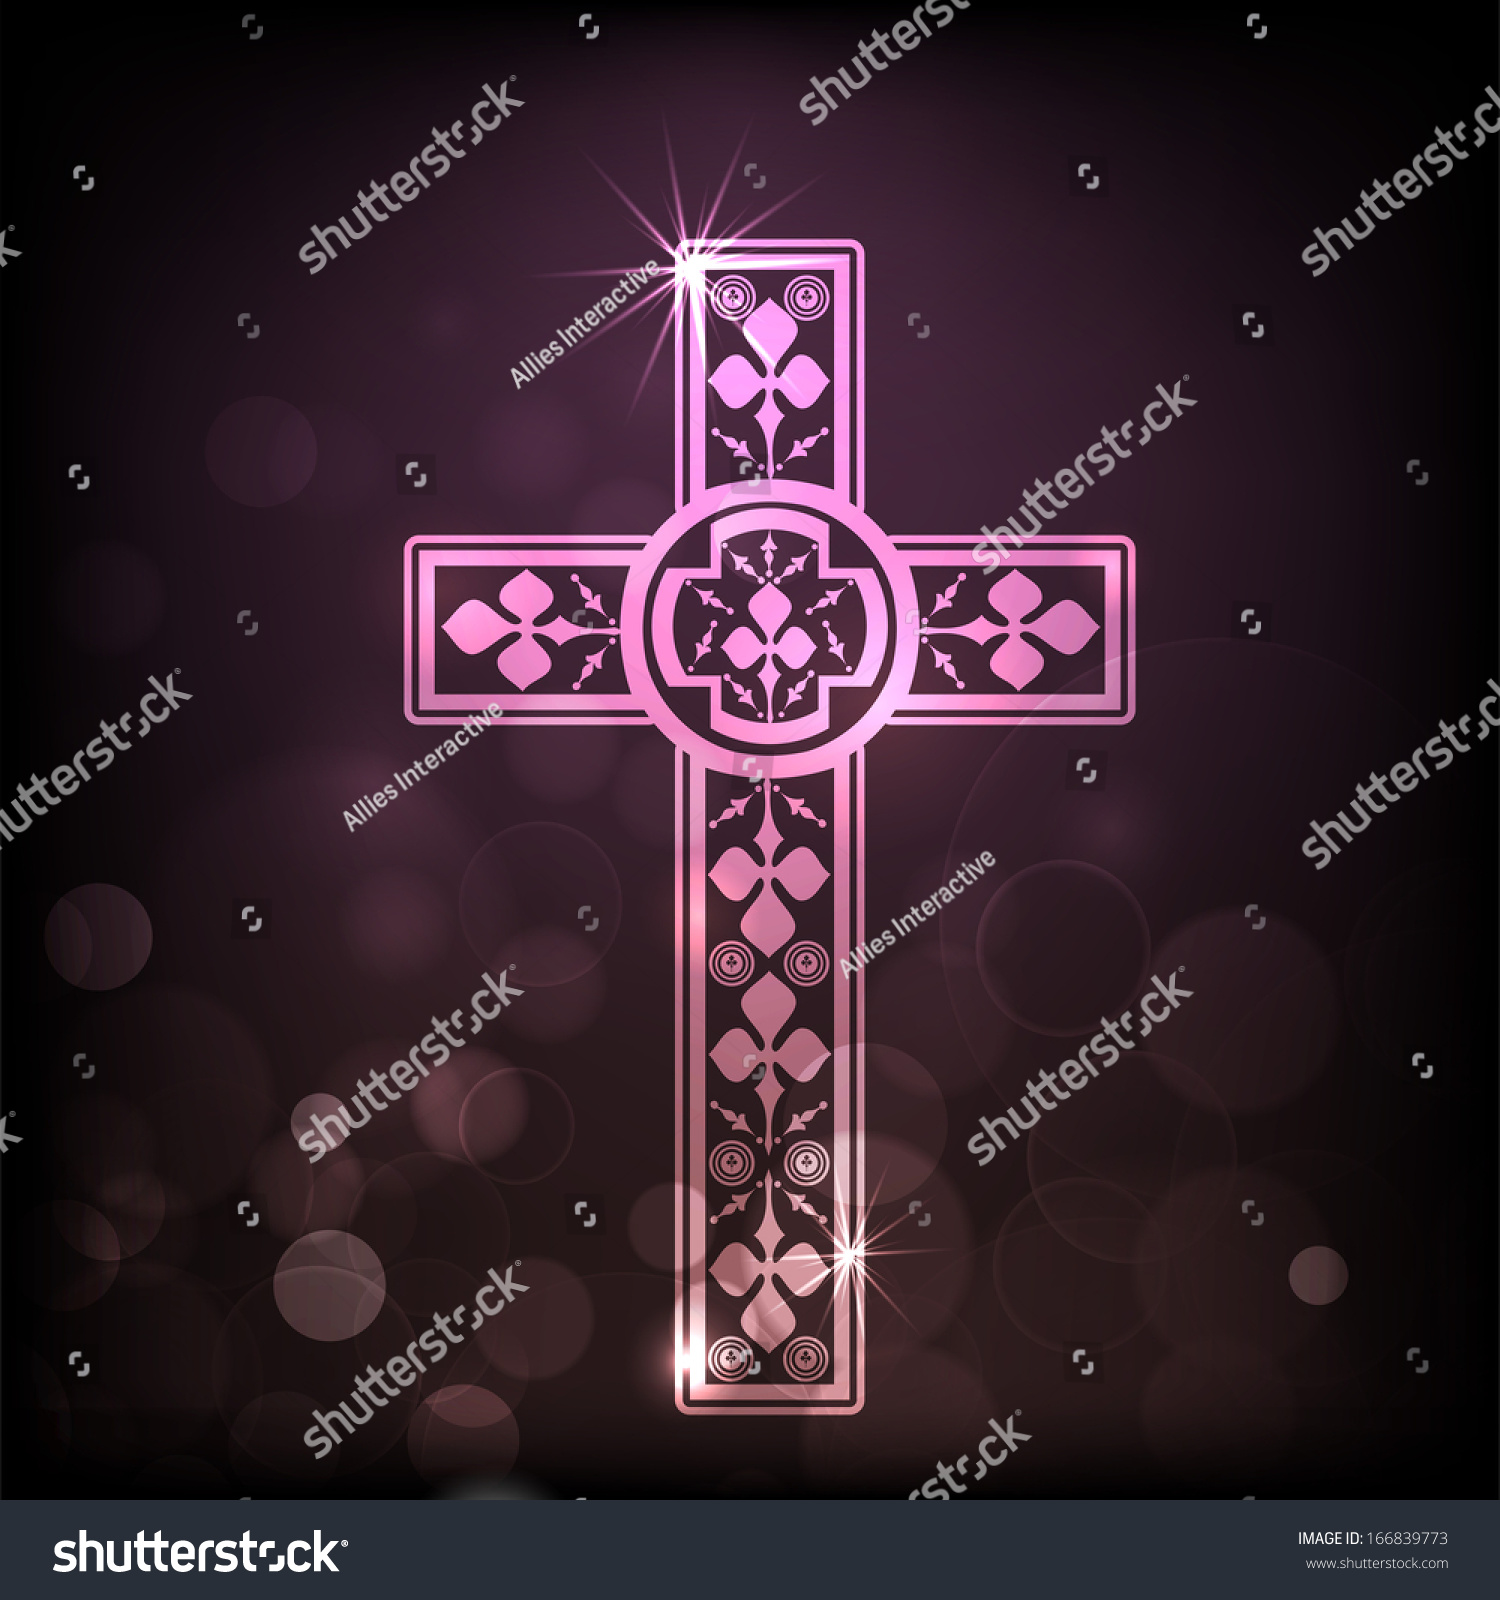 merry christmas and happy new year religious. merry christmas and happy new year 2014 celebration concept with christian cross religious